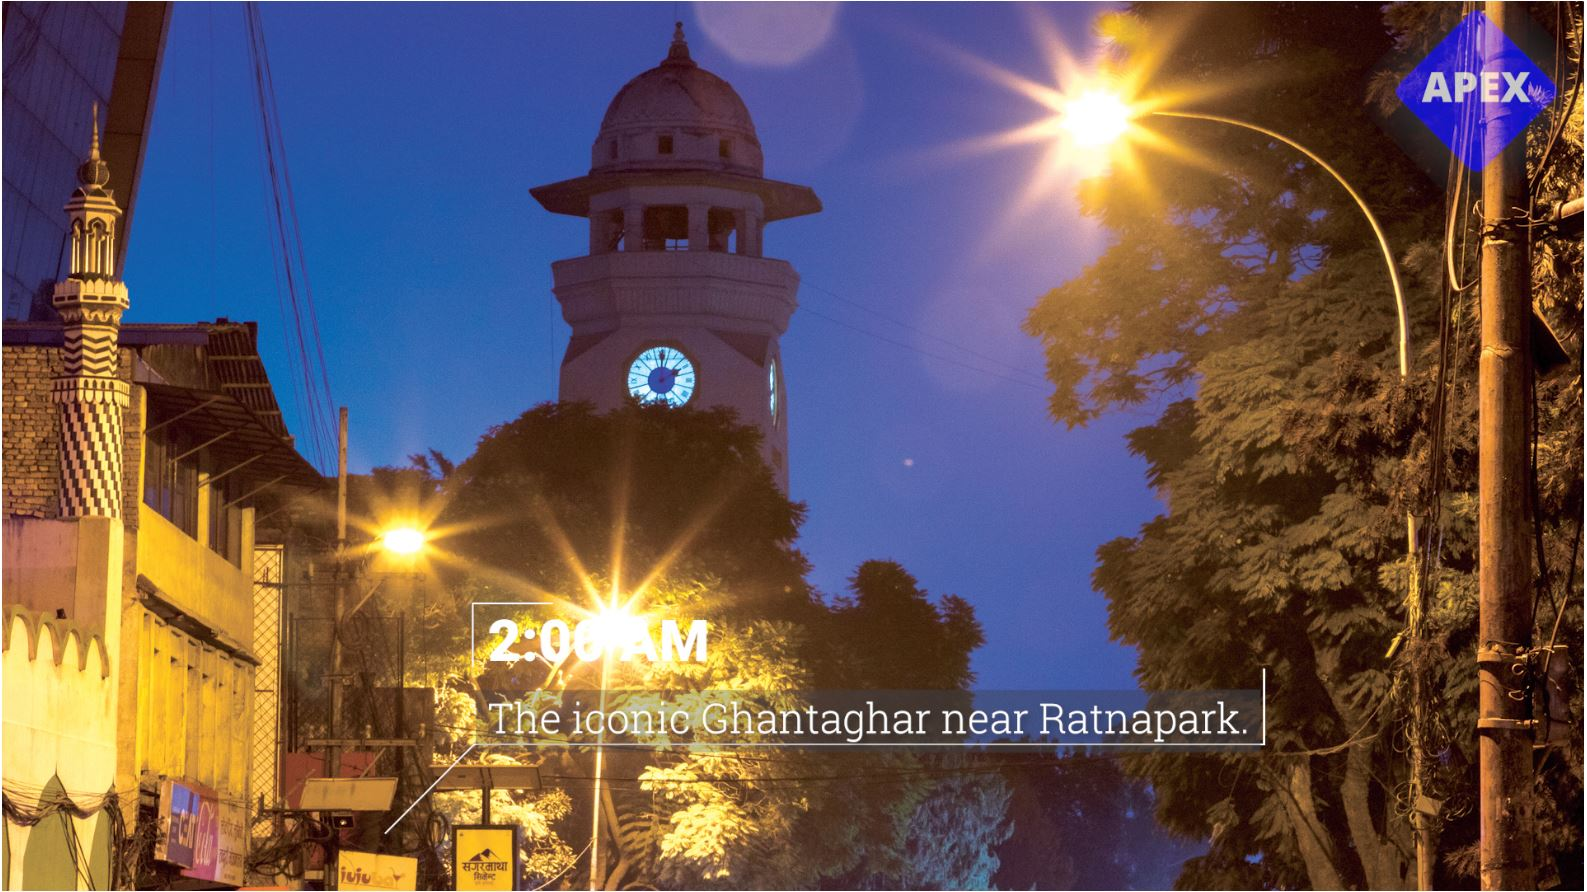 The iconic Ghantaghar near Ratnapark. (2:00 am)